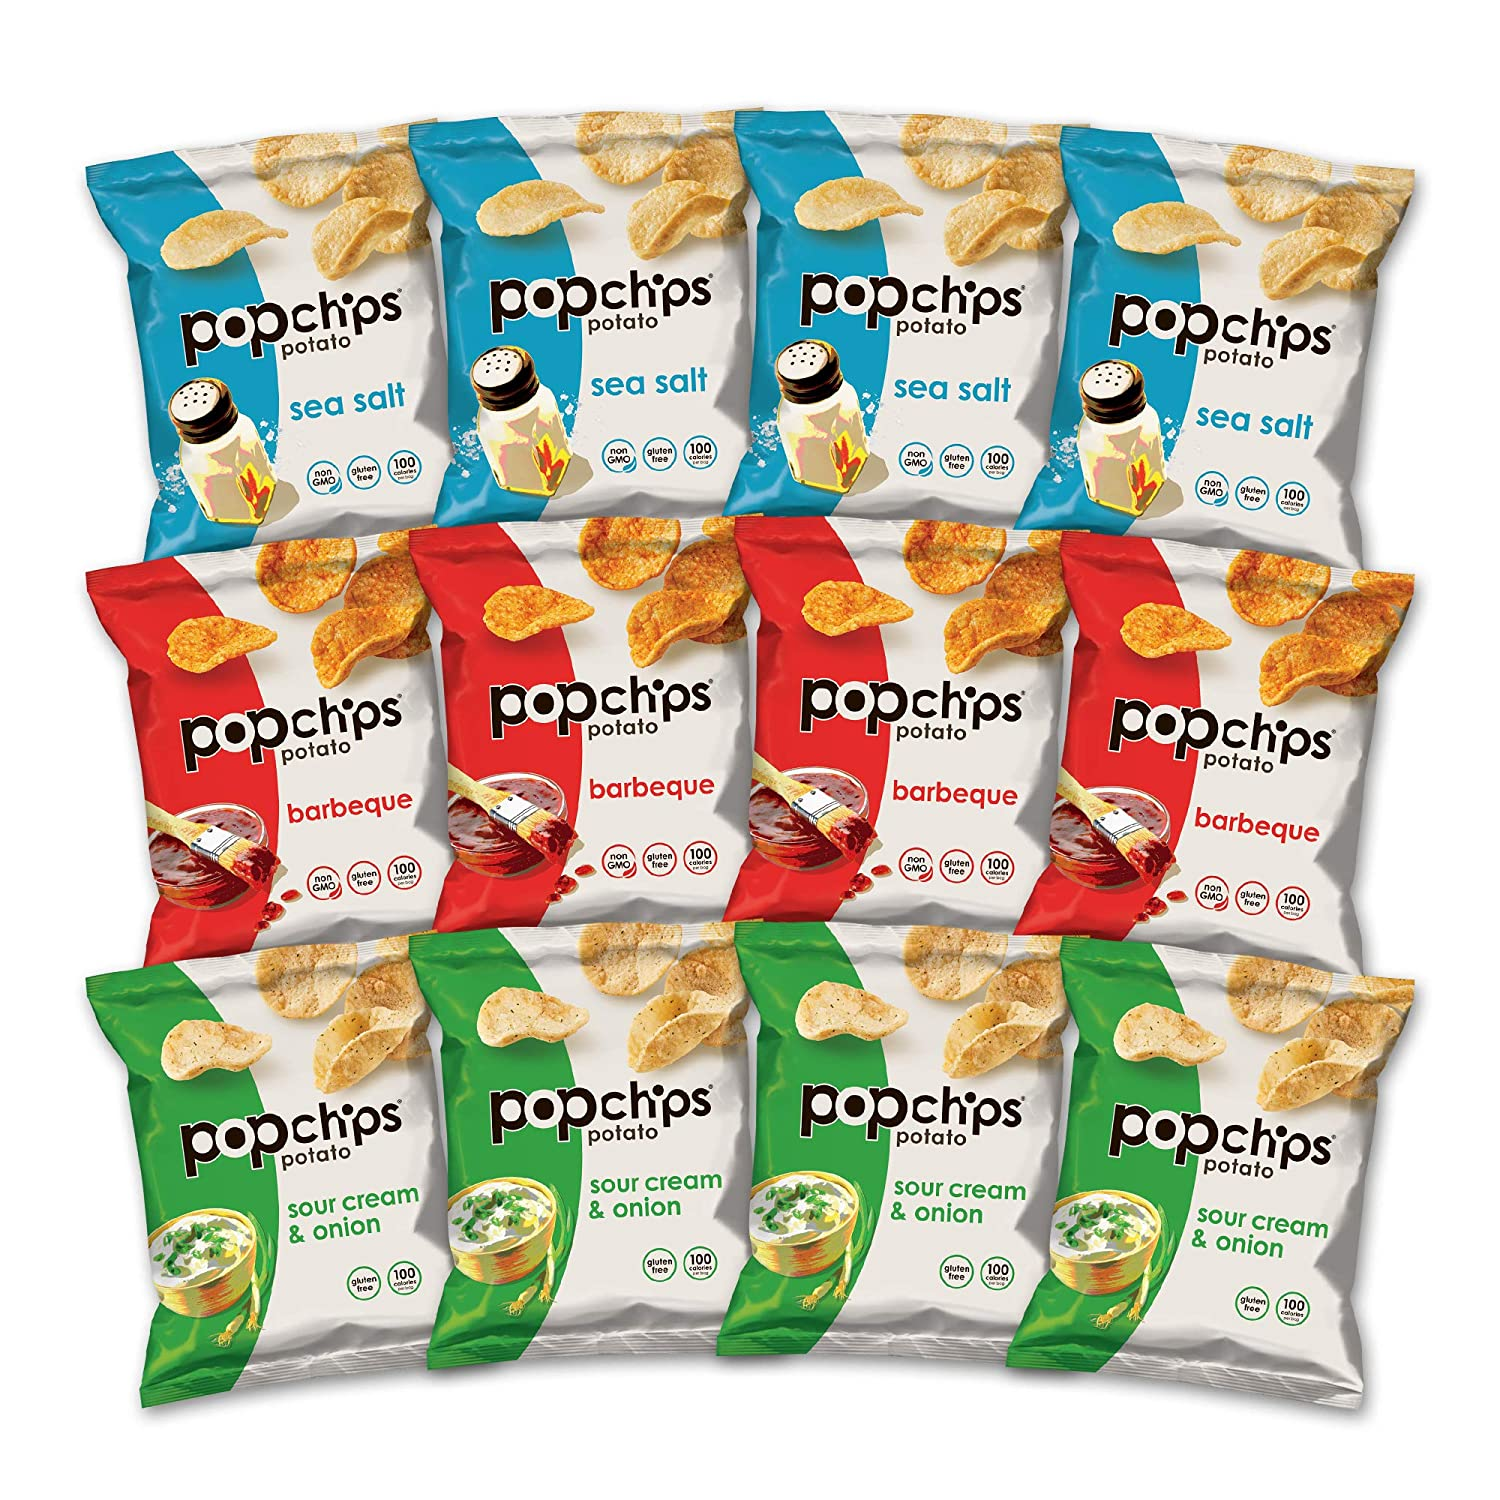 popchips Potato Chips Variety Pack Of 0.8 Oz Bags Flavors In 4 Sea Salt/4 BBQ/4 Sour Cream Onion, 12 Count